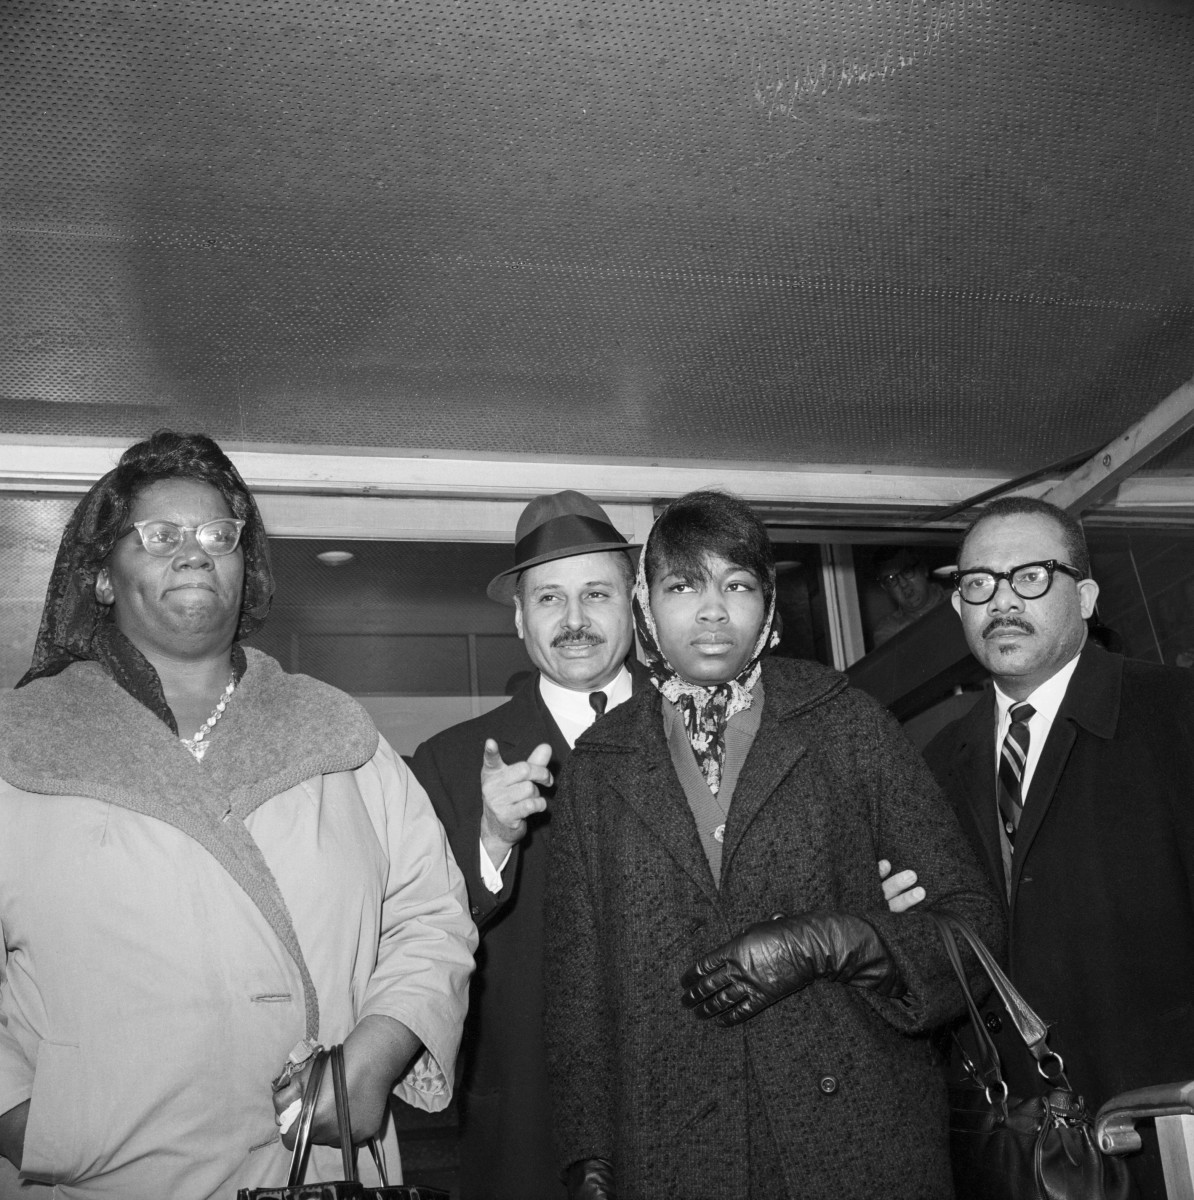 Betty Shabazz leaves the morgue at Bellevue Hospital in New York after identifying the body of her husband, Malcolm X, February 22, 1965